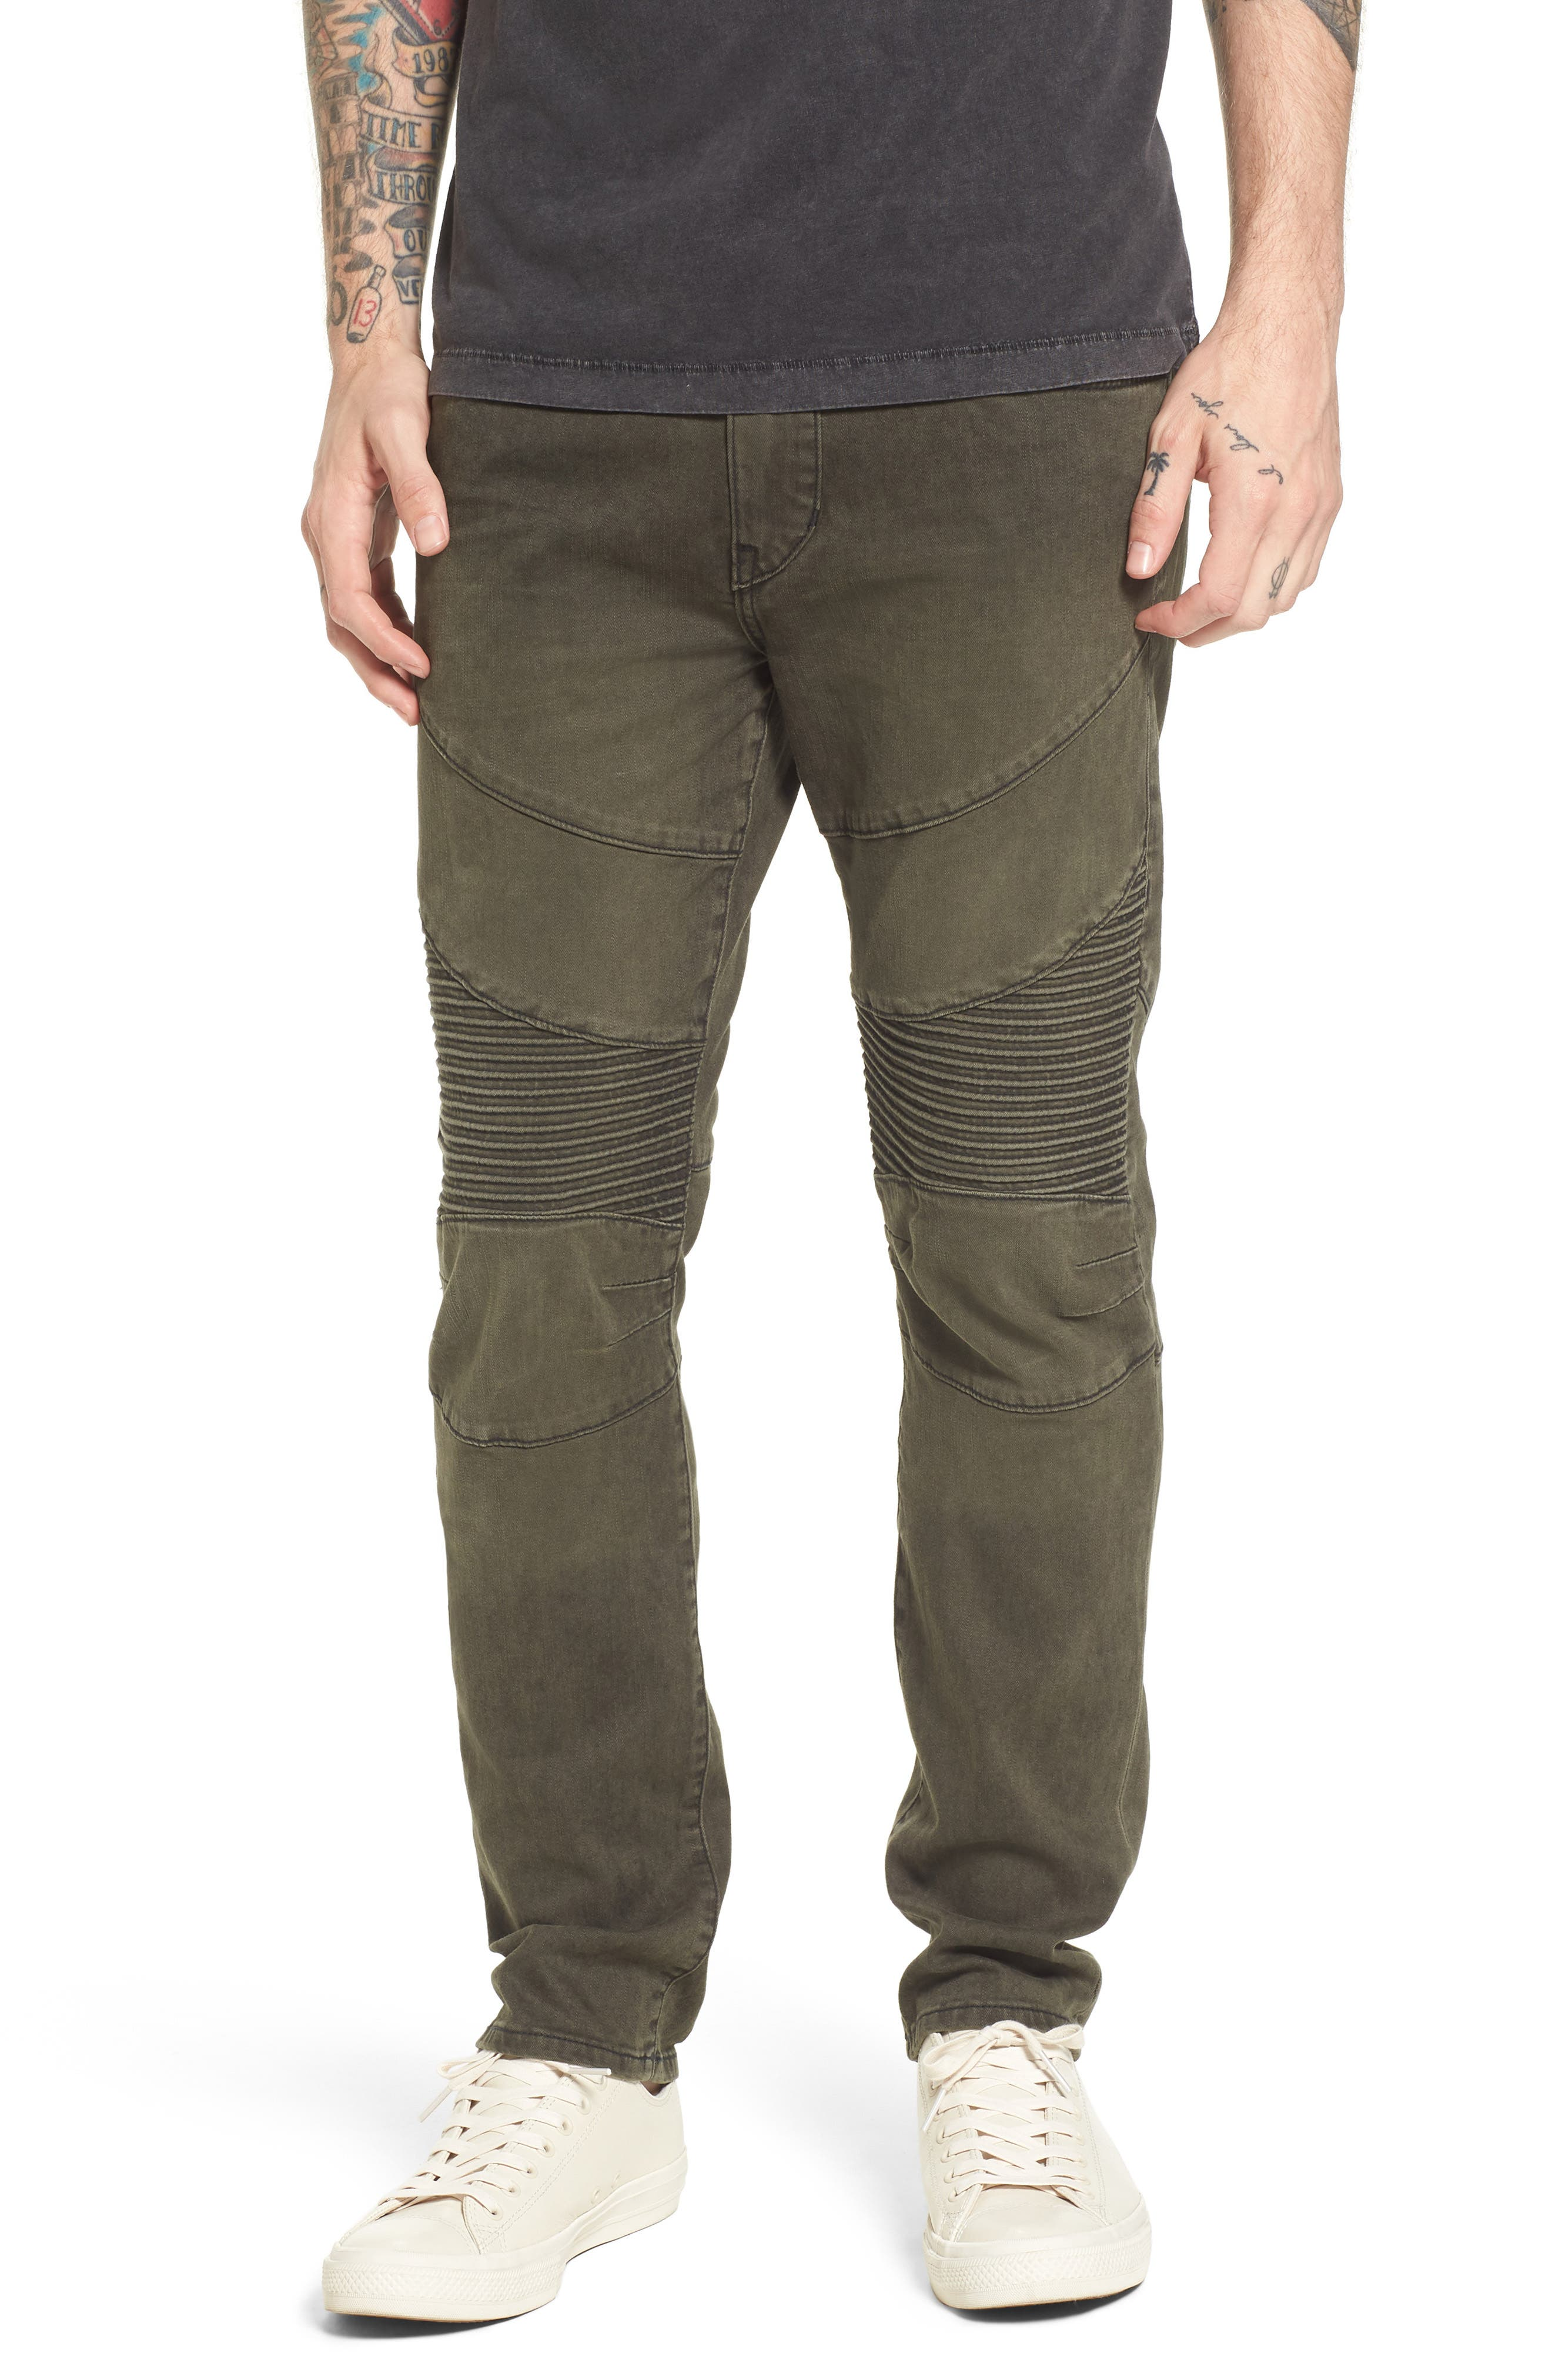 Main Image - True Religion Brand Jeans Rocco Skinny Fit Jeans (Olive Coated)